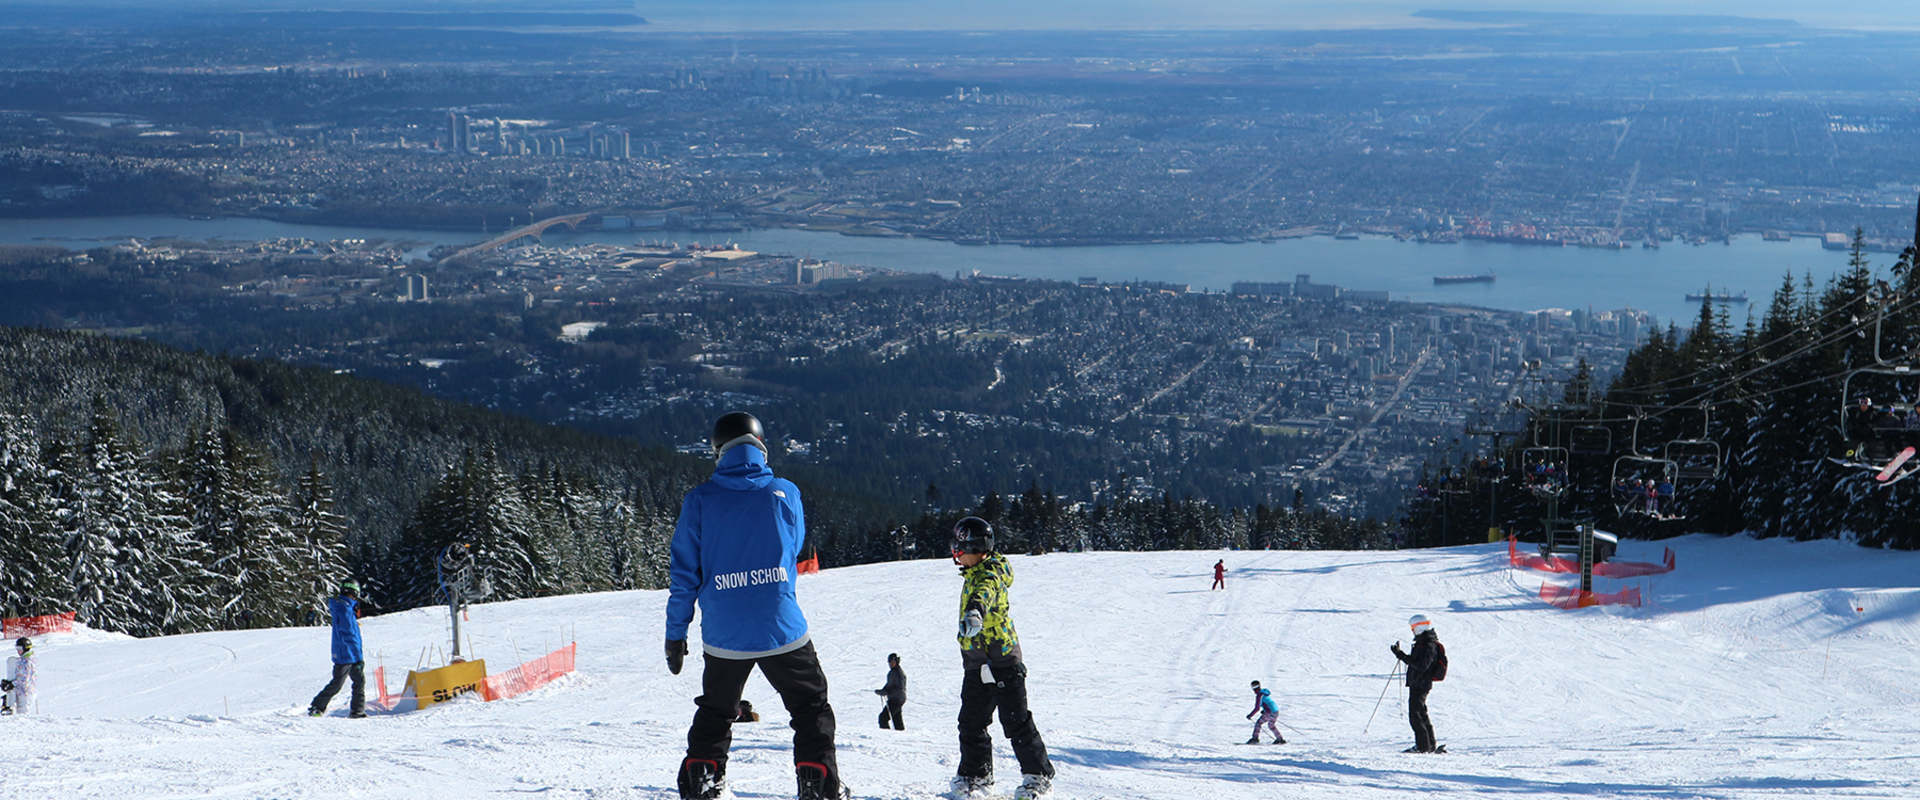 Snow On First Day Of Spring Makes Me >> Spring Has Sprung Snow School Tips Grouse Mountain The Peak Of